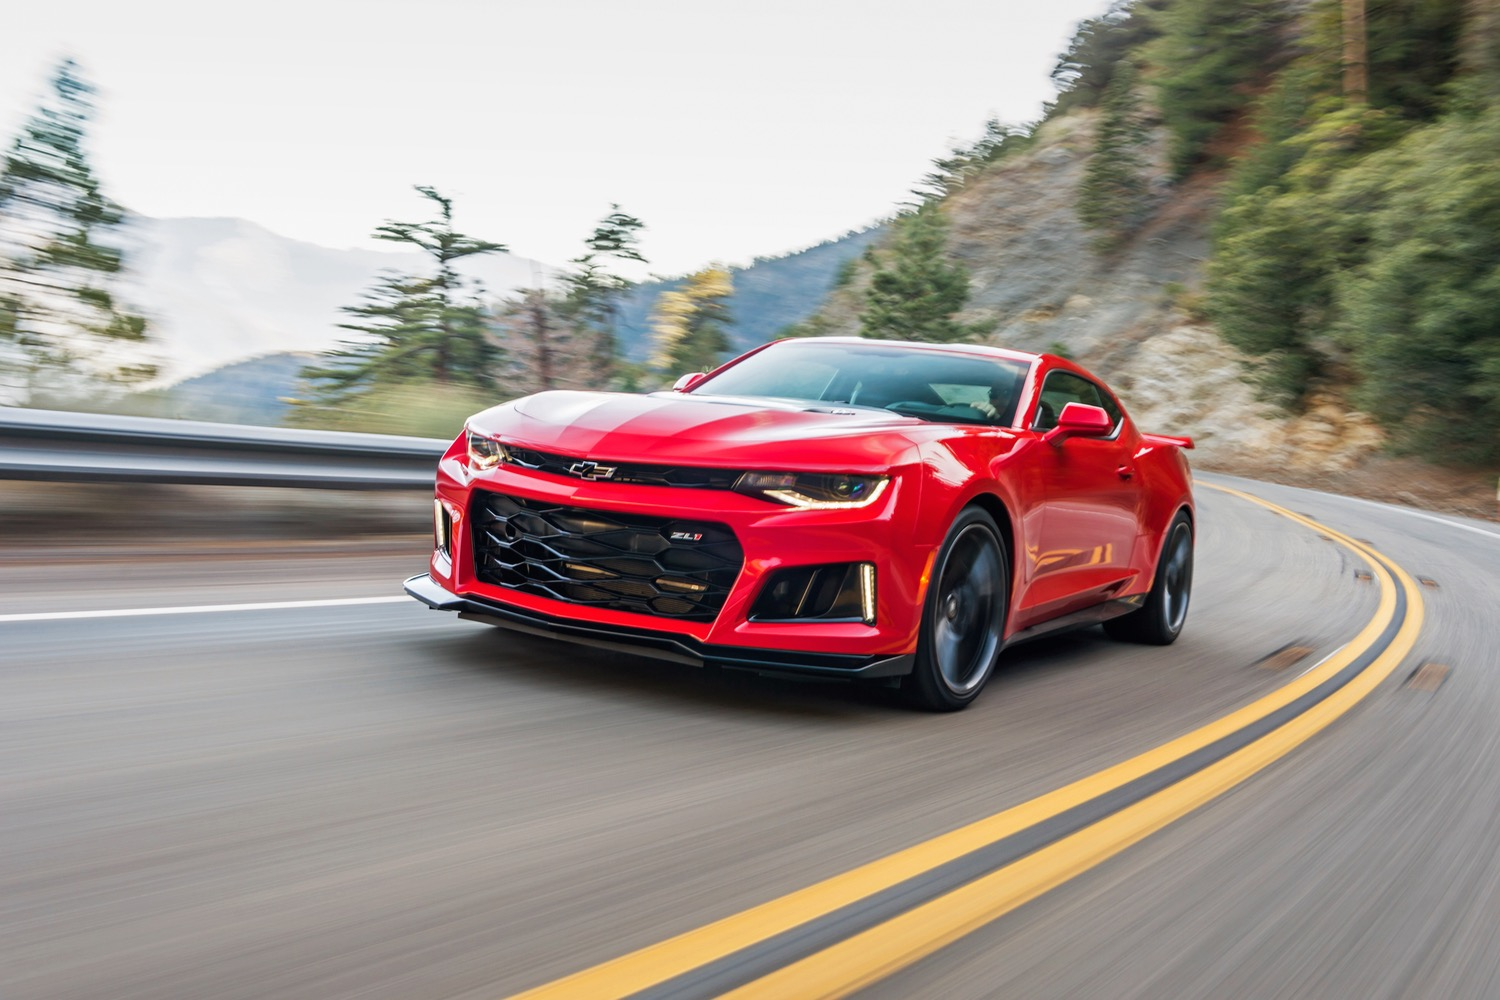 2017 Chevrolet Camaro Zl1 Aims For 200 Mph And Almost Makes It